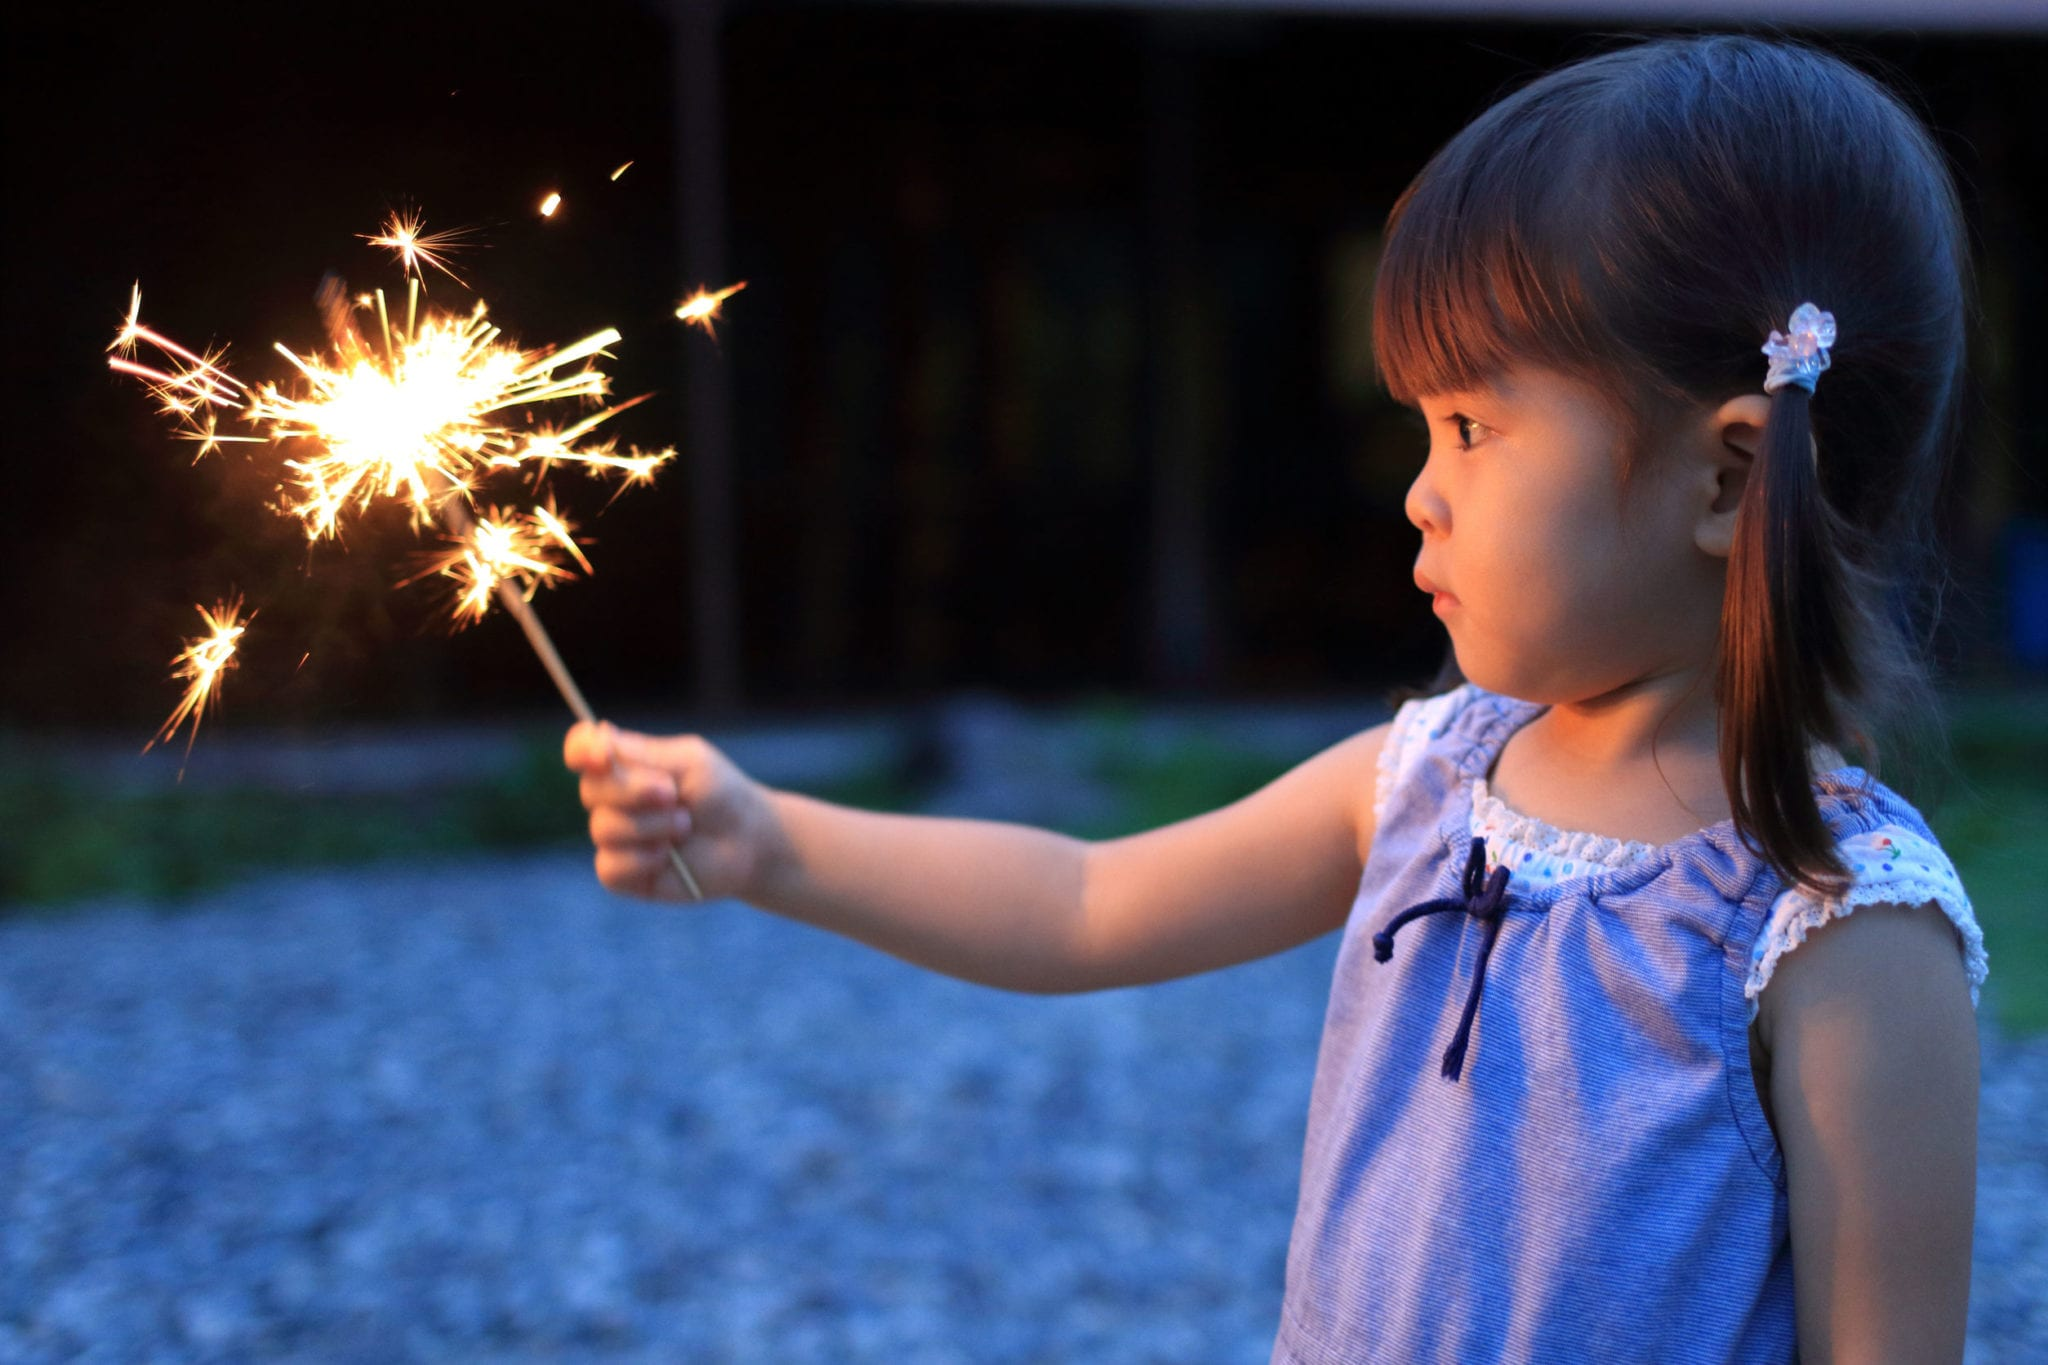 Texas Parents: Keep Your Child Safe This Summer